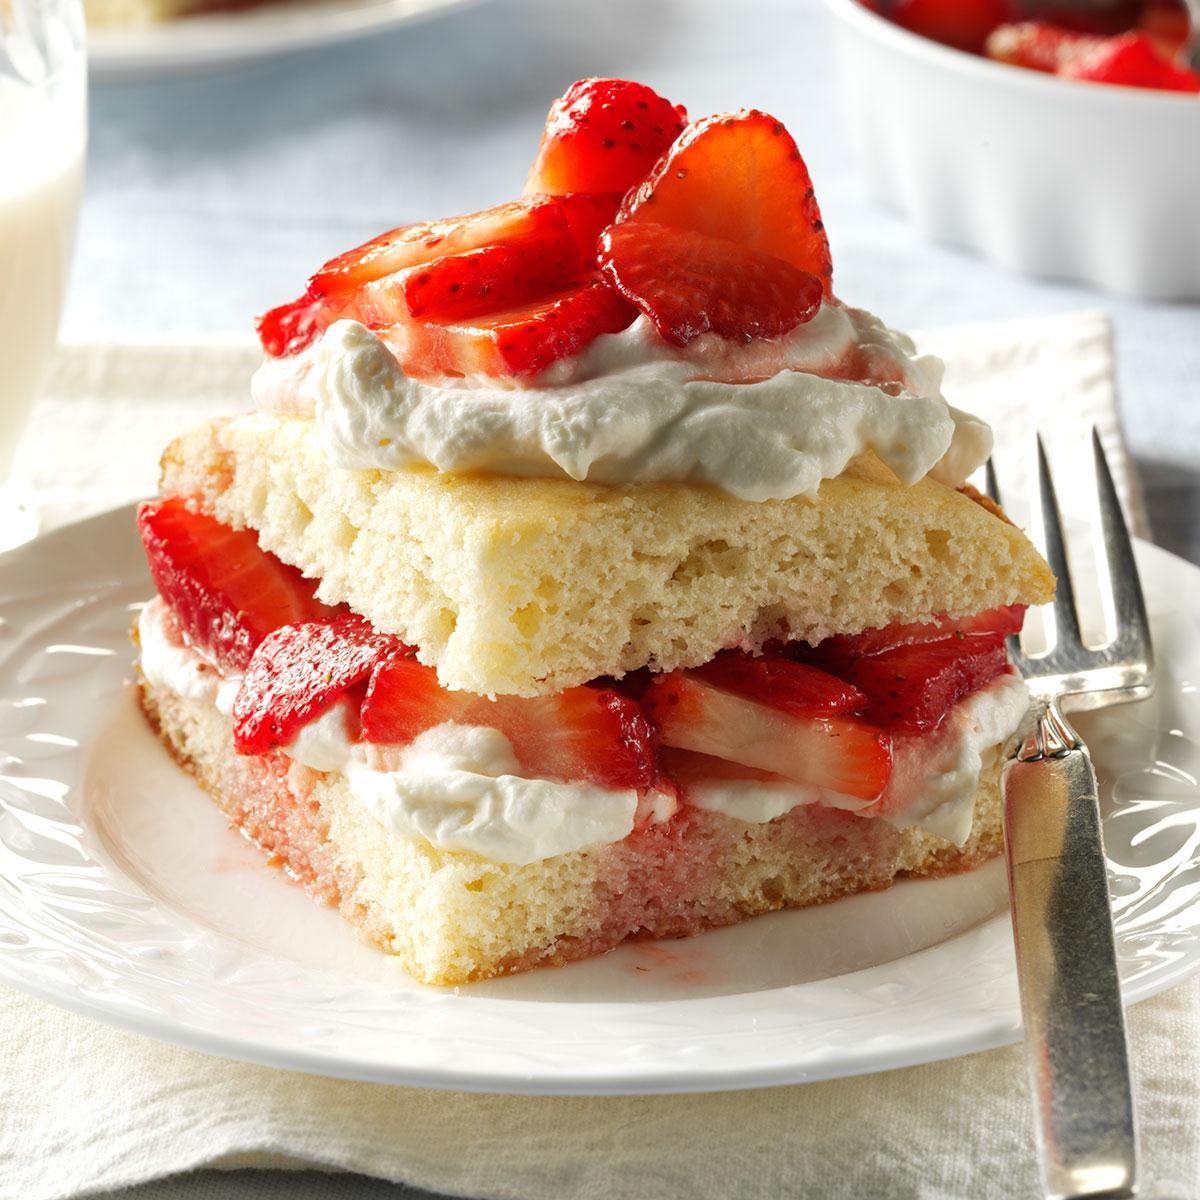 Strawberry Shortcake Recipe | Taste of Home